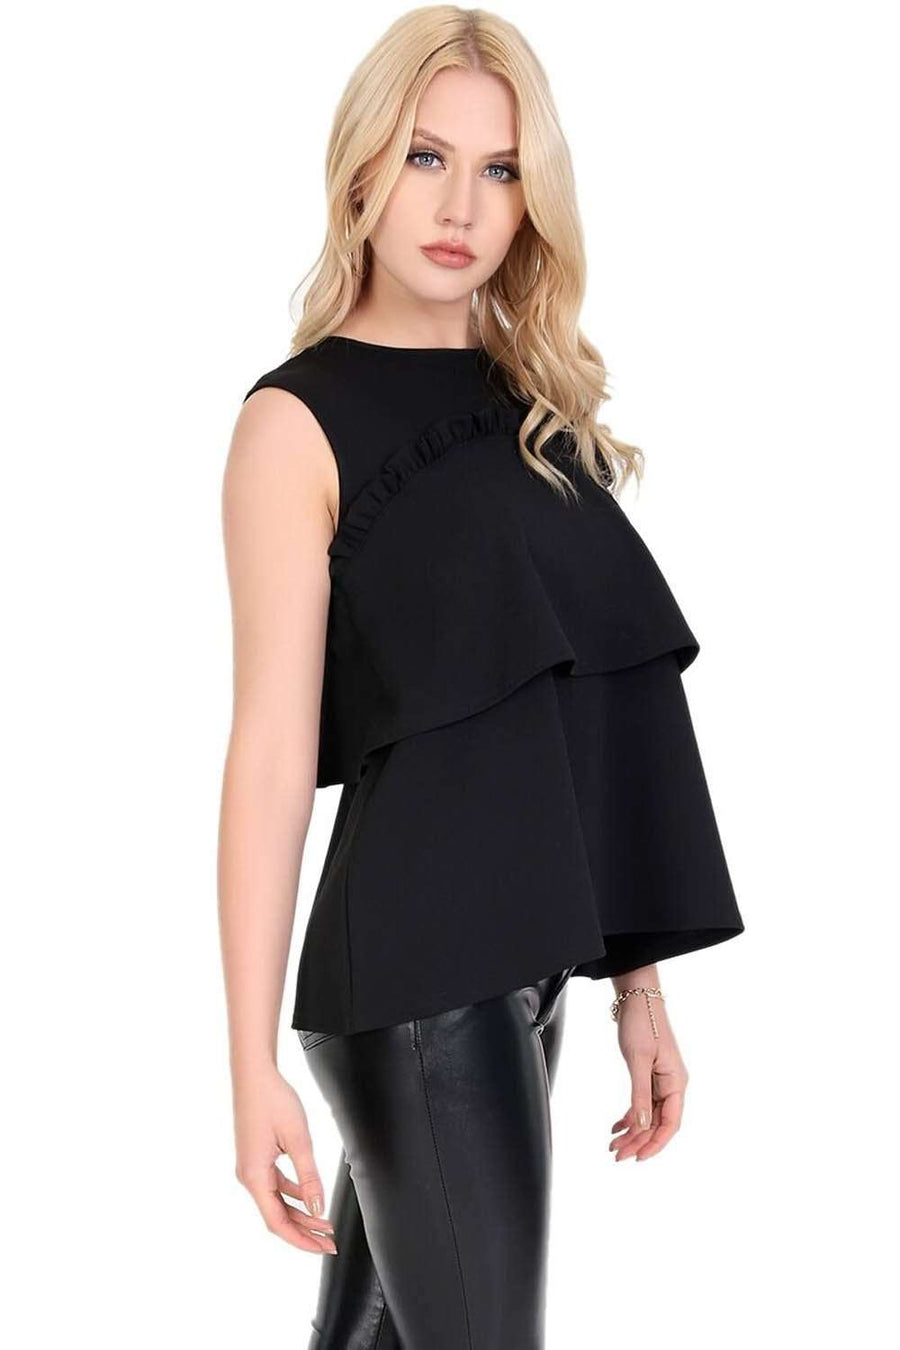 Black Crepe Sleeveless Tiered Frill Vest Top - bejealous-com